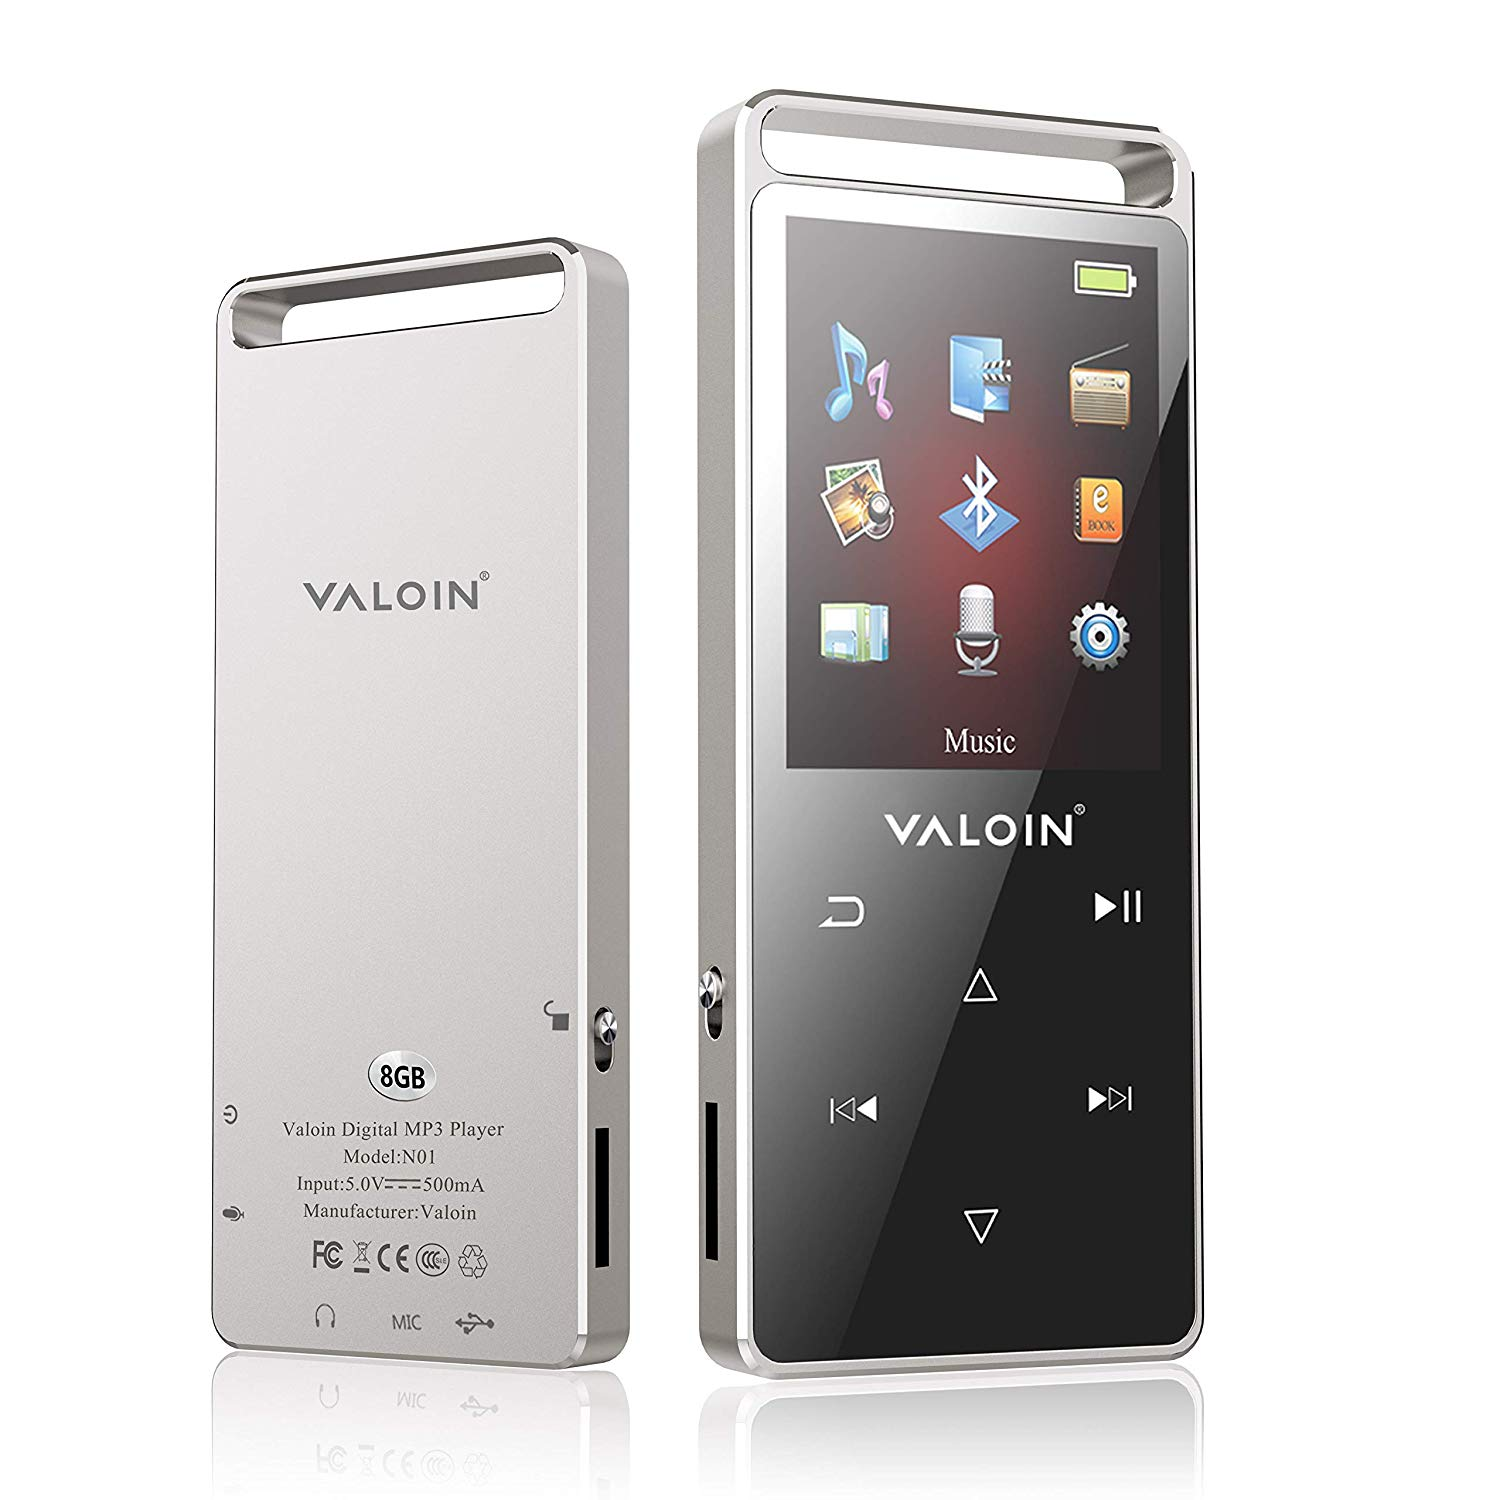 Valoin Bluetooth 4.0 MP3 Music Player,8G Lossless Sound Music Player Multifunction Bluetooth MP3 Player with Pedometer,Touch Buttons